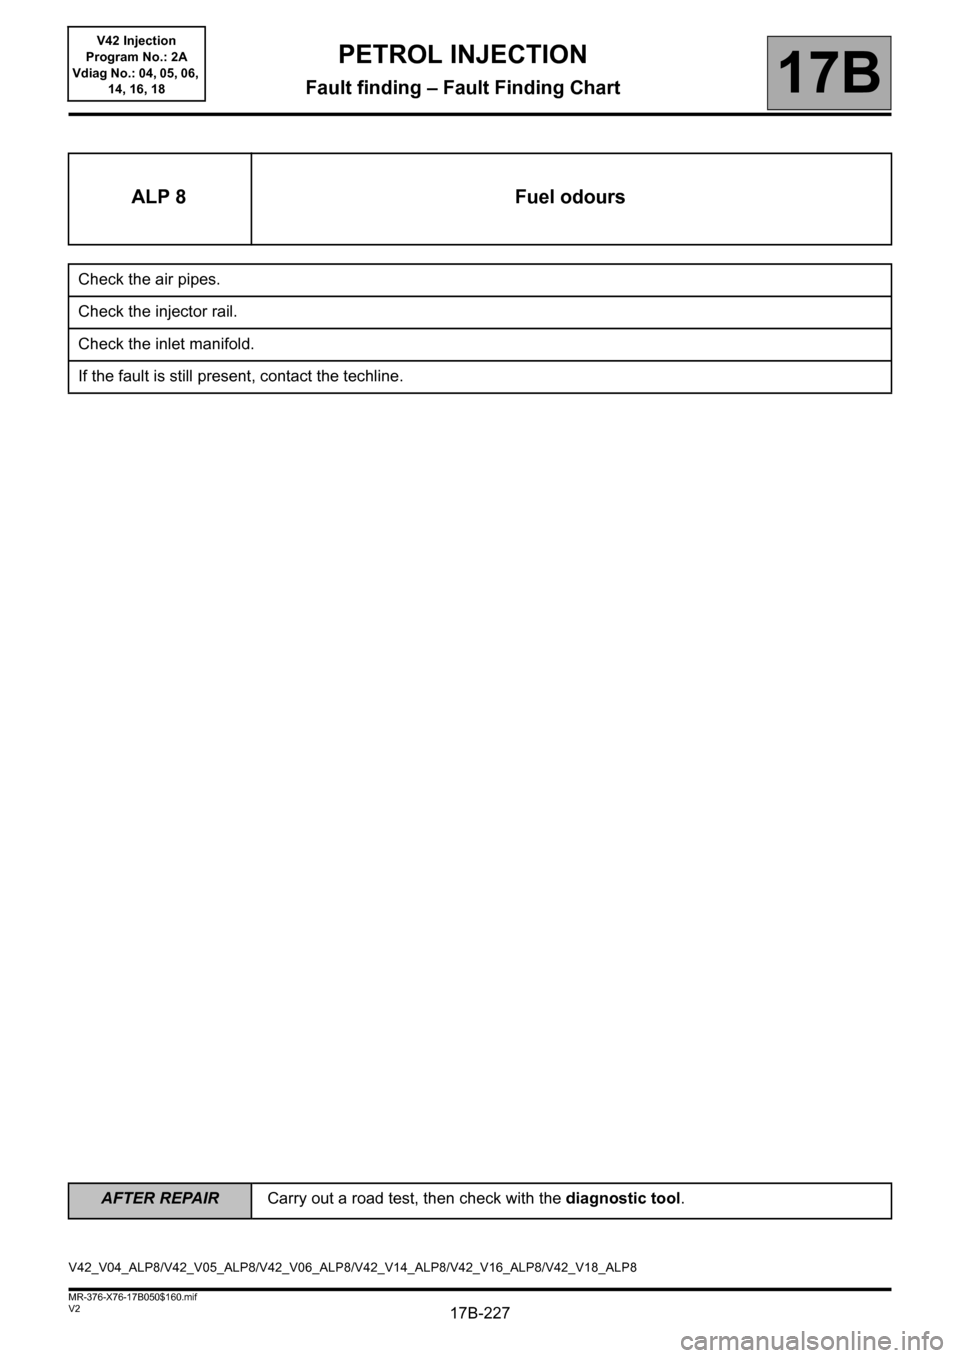 RENAULT KANGOO 2013 X61 / 2.G Petrol V42 Injection Workshop Manual, Page 227